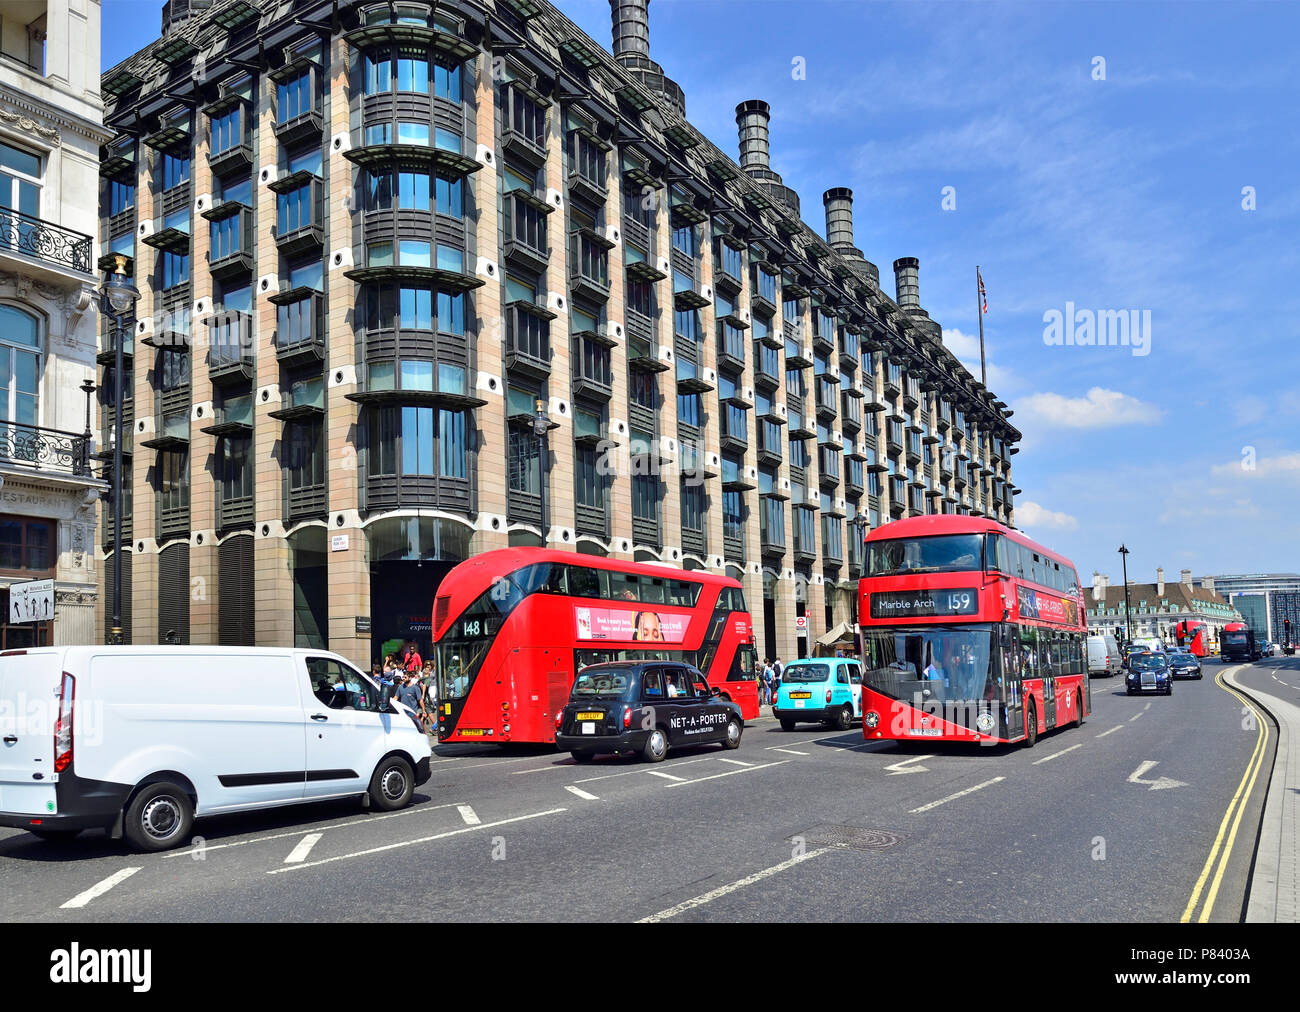 Portcullis House (Parliamentry offices) and double decker buses in Parliament Square, Westminster, London, England, UK. - Stock Image